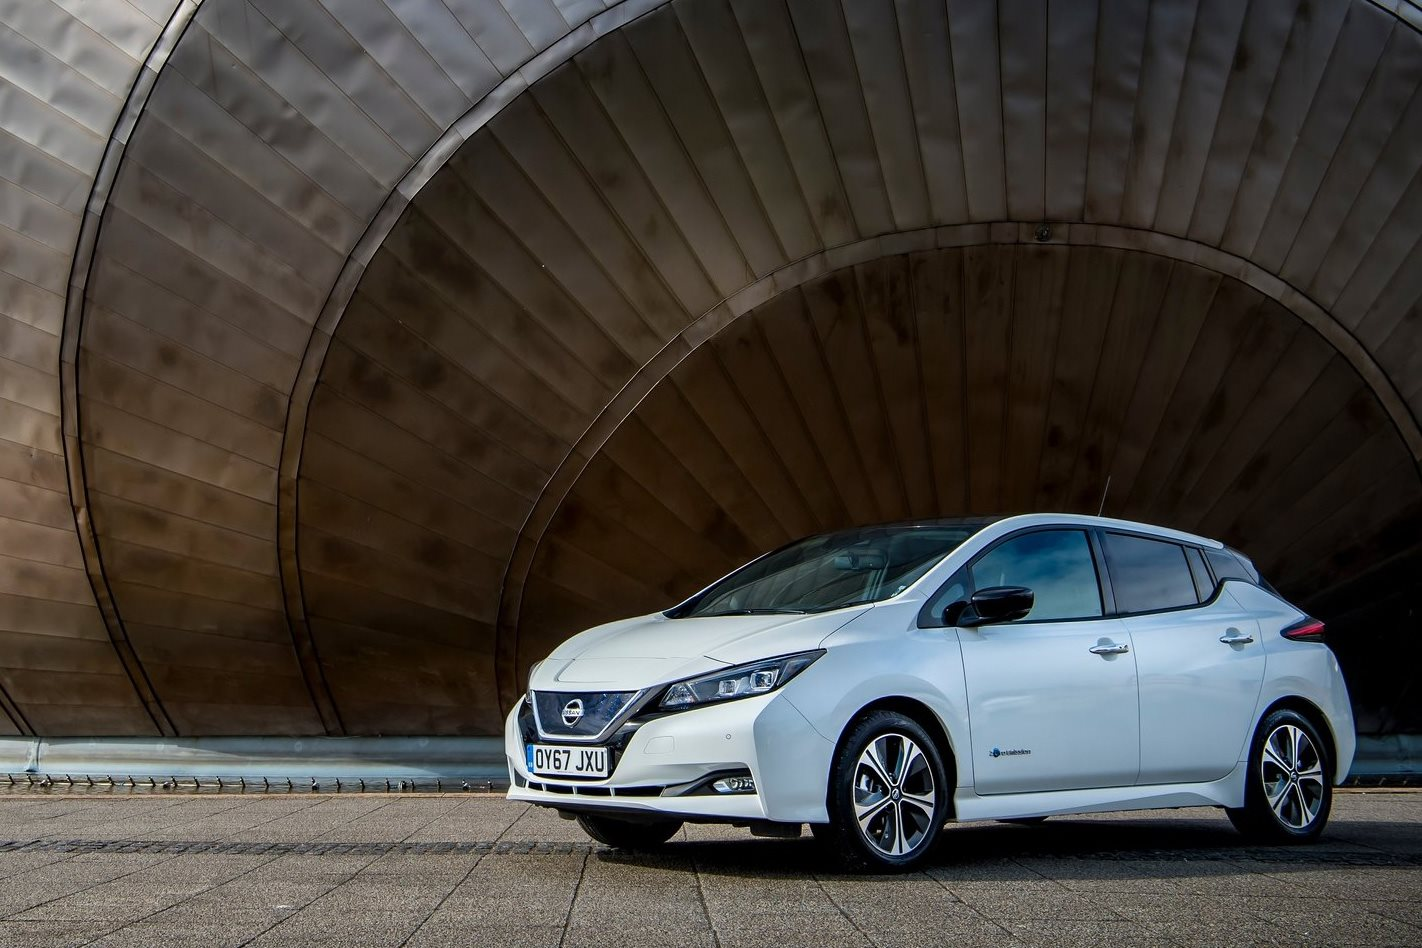 Nissan pledges to sell 1 million electrified vehicles by 2022